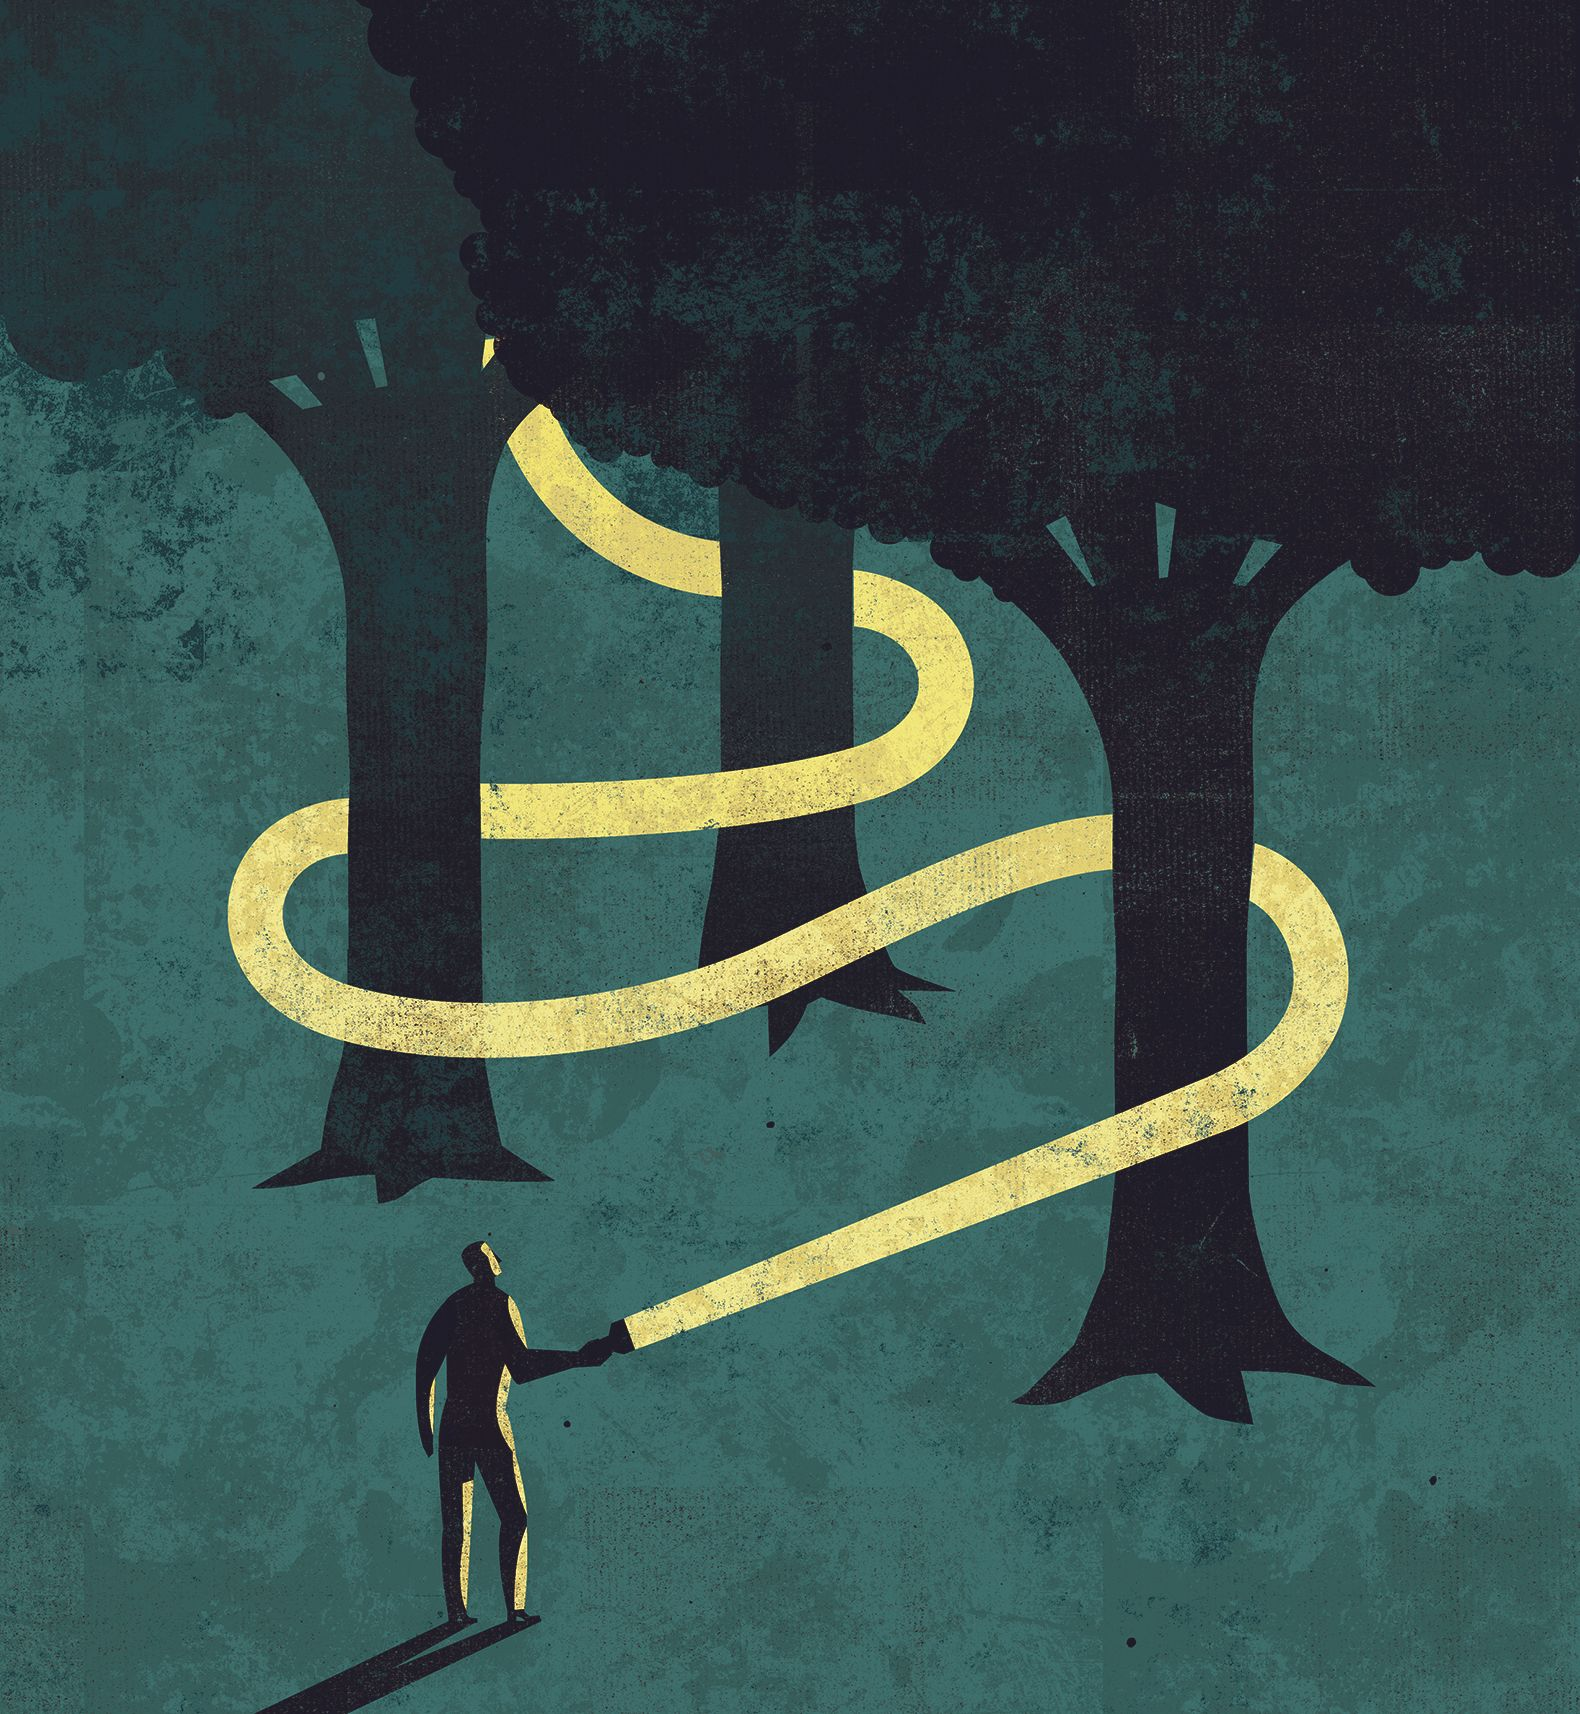 Illustration of man carrying flashlight and walking through some trees